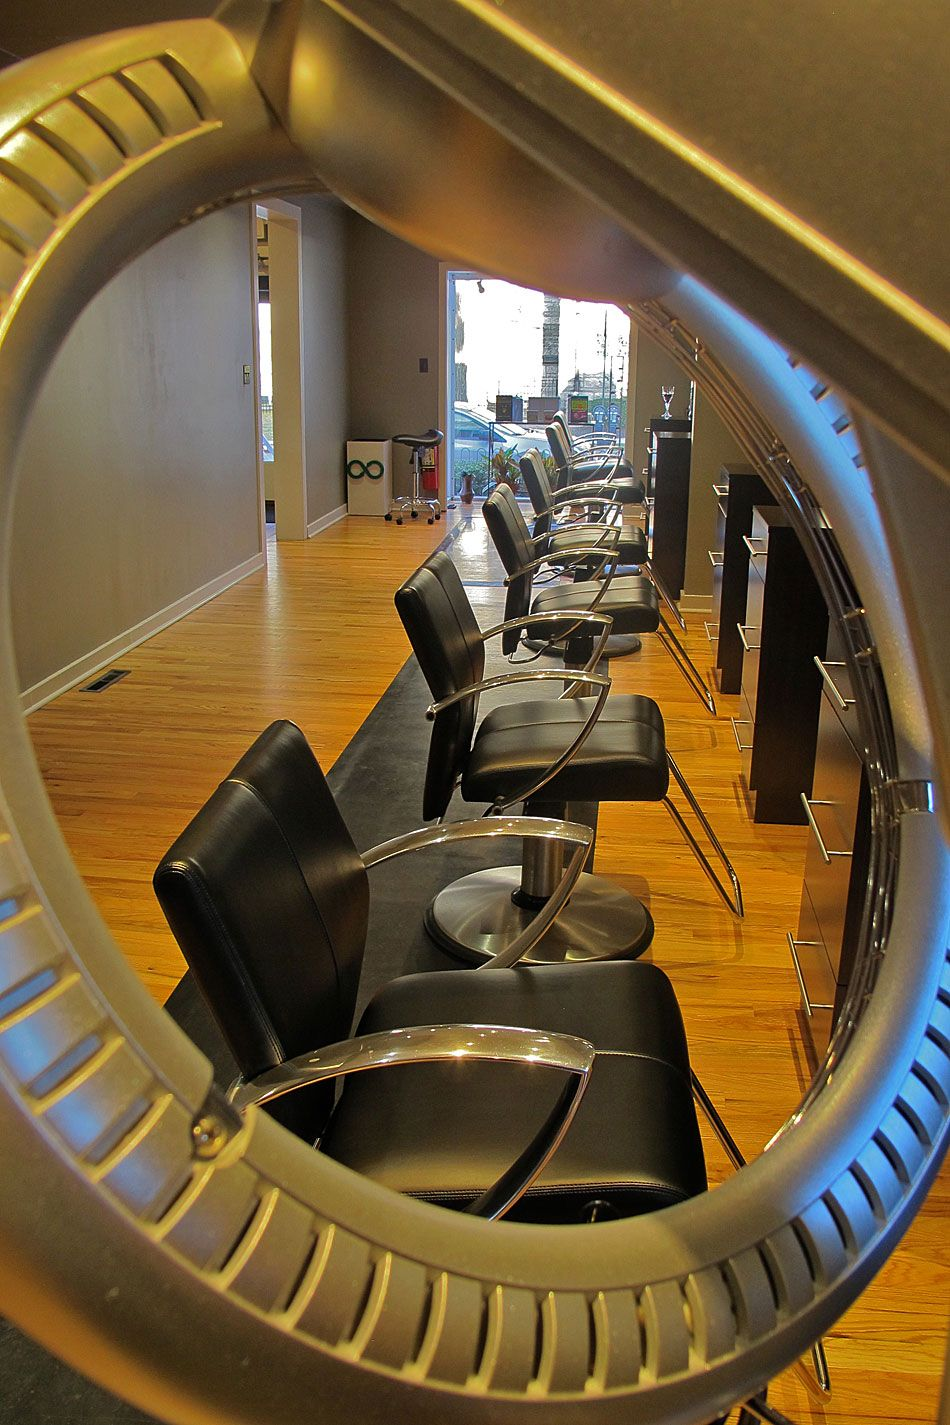 Copper River Salon And Spa In Princeton Nj